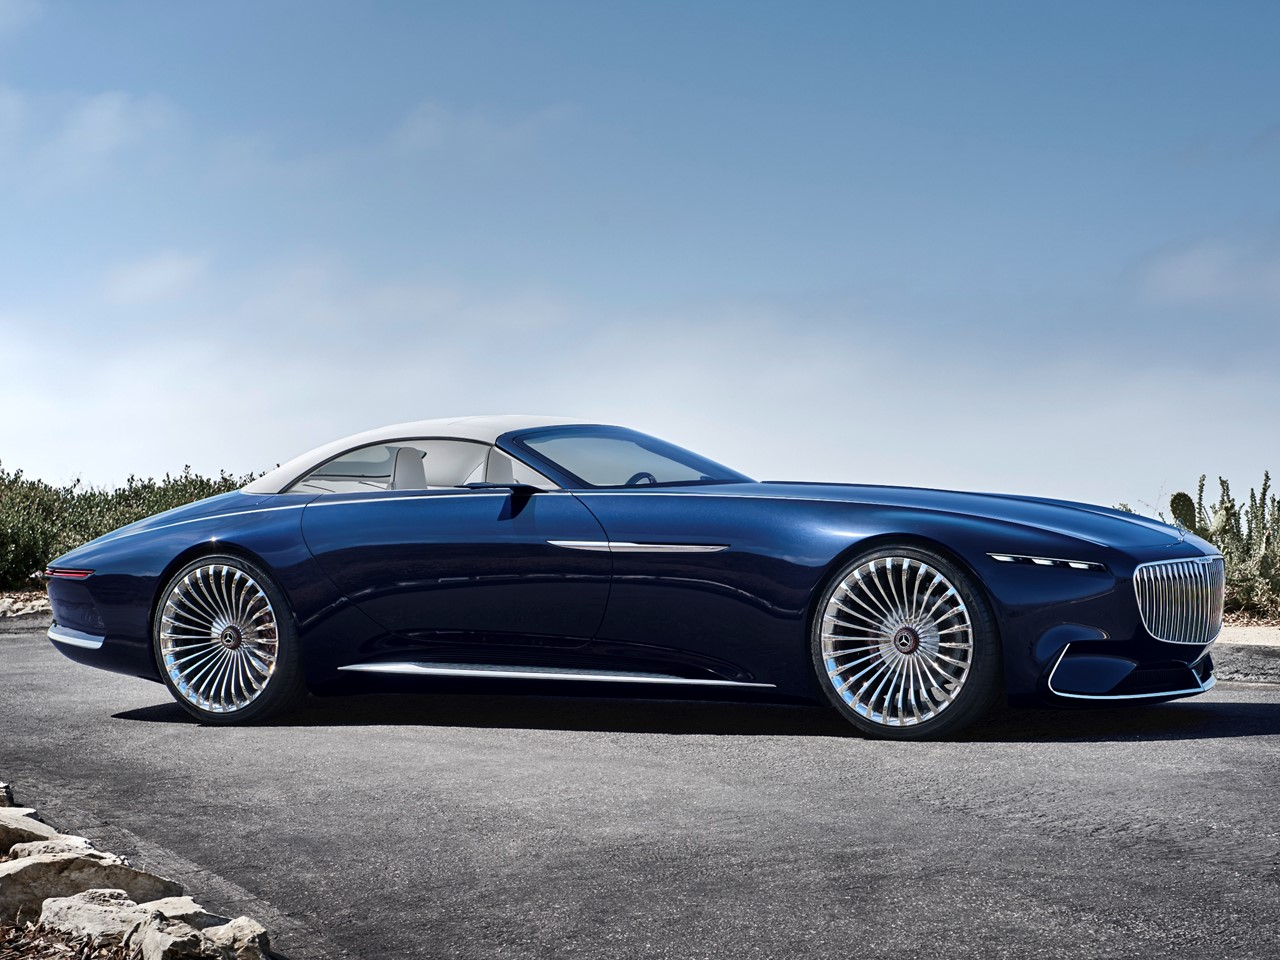 Mercedes-Maybach 4